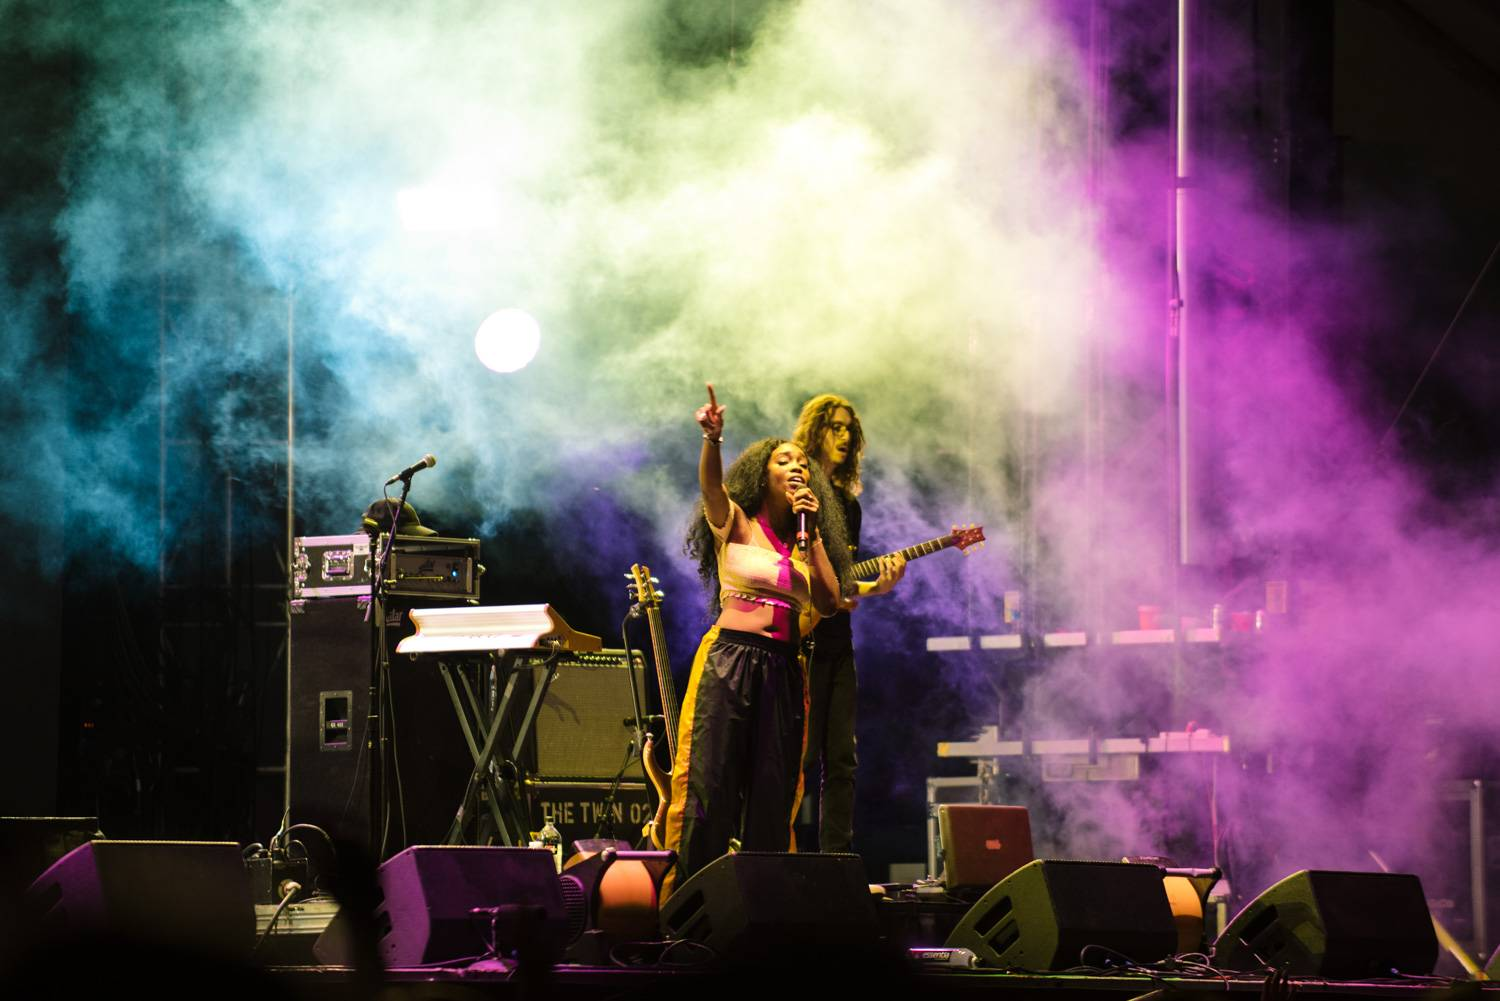 SZA at the Bumbershoot Music Festival 2018 - Day 3. Sept 2 2018. Pavel Boiko photo.